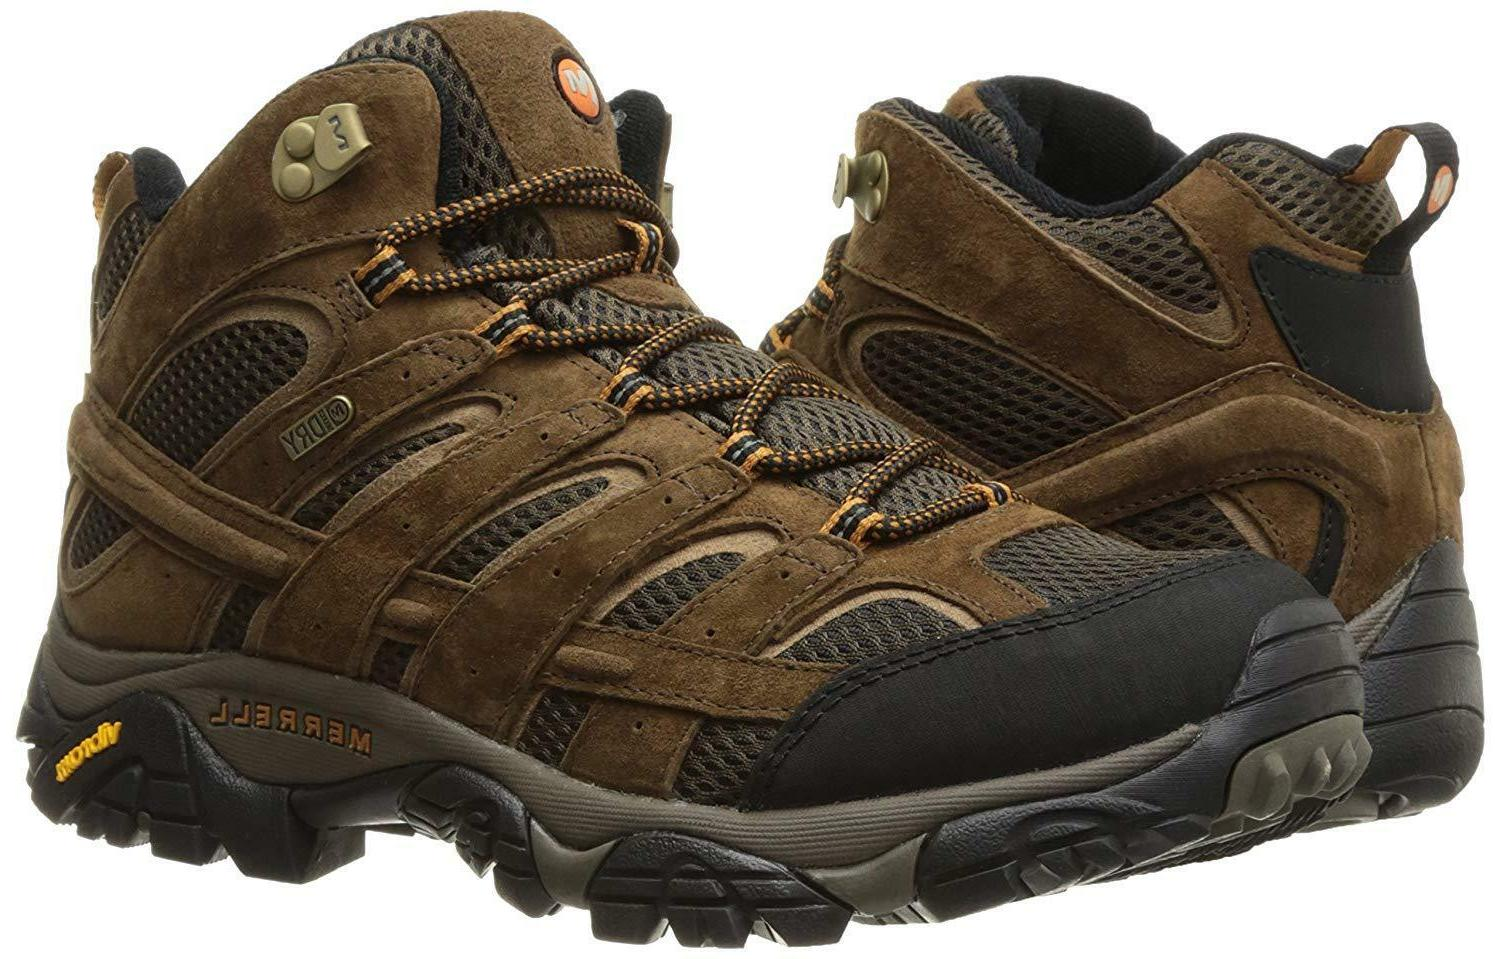 Merrell 2 Mid Waterproof